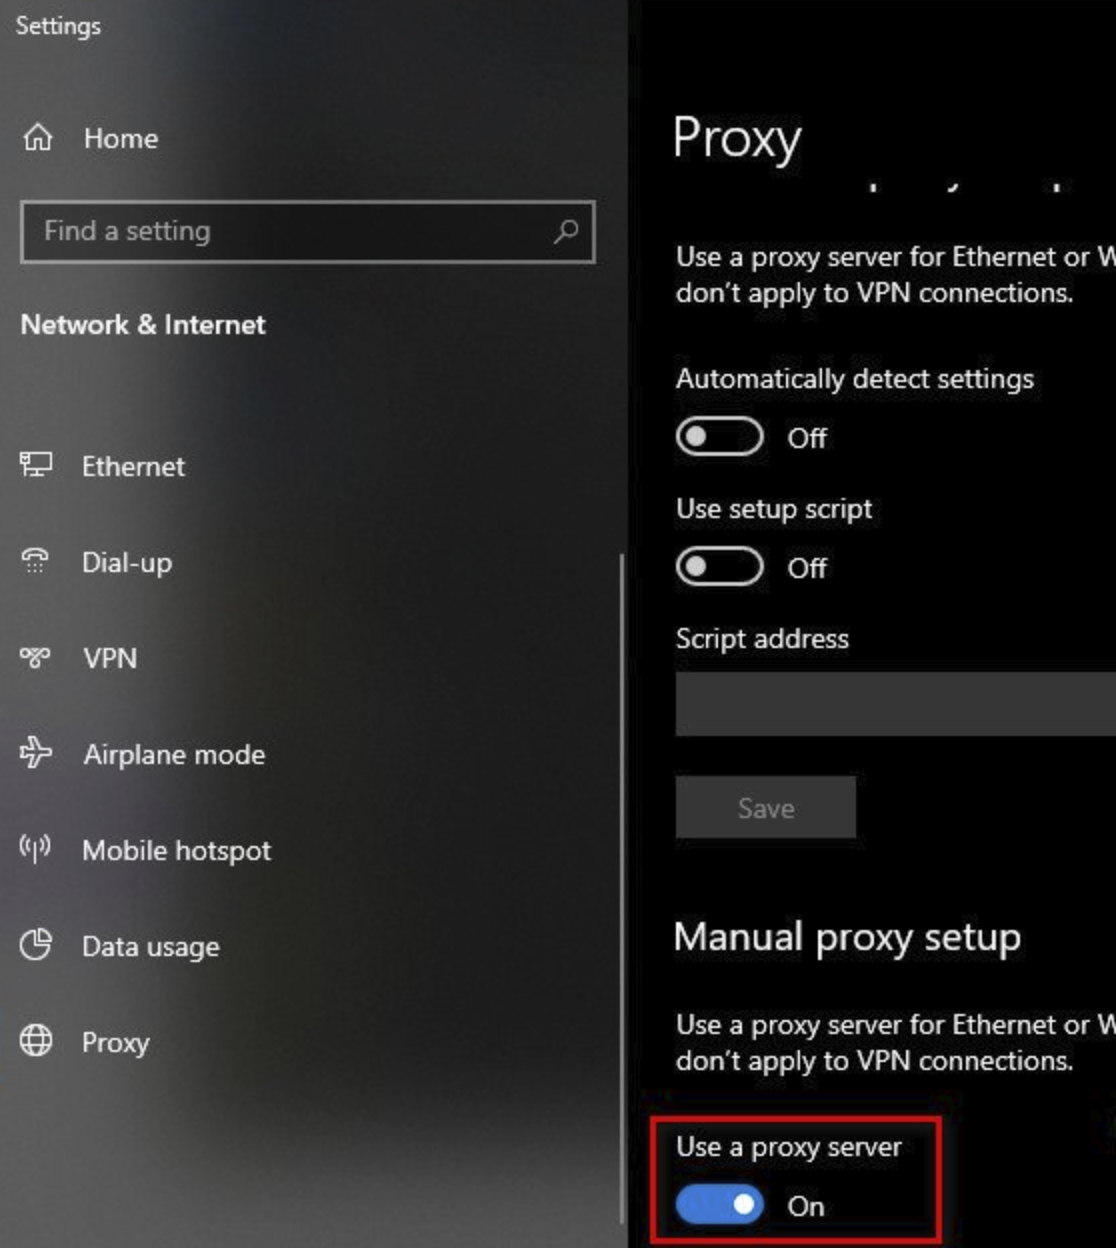 Toggle OFF the Use a proxy server setting.